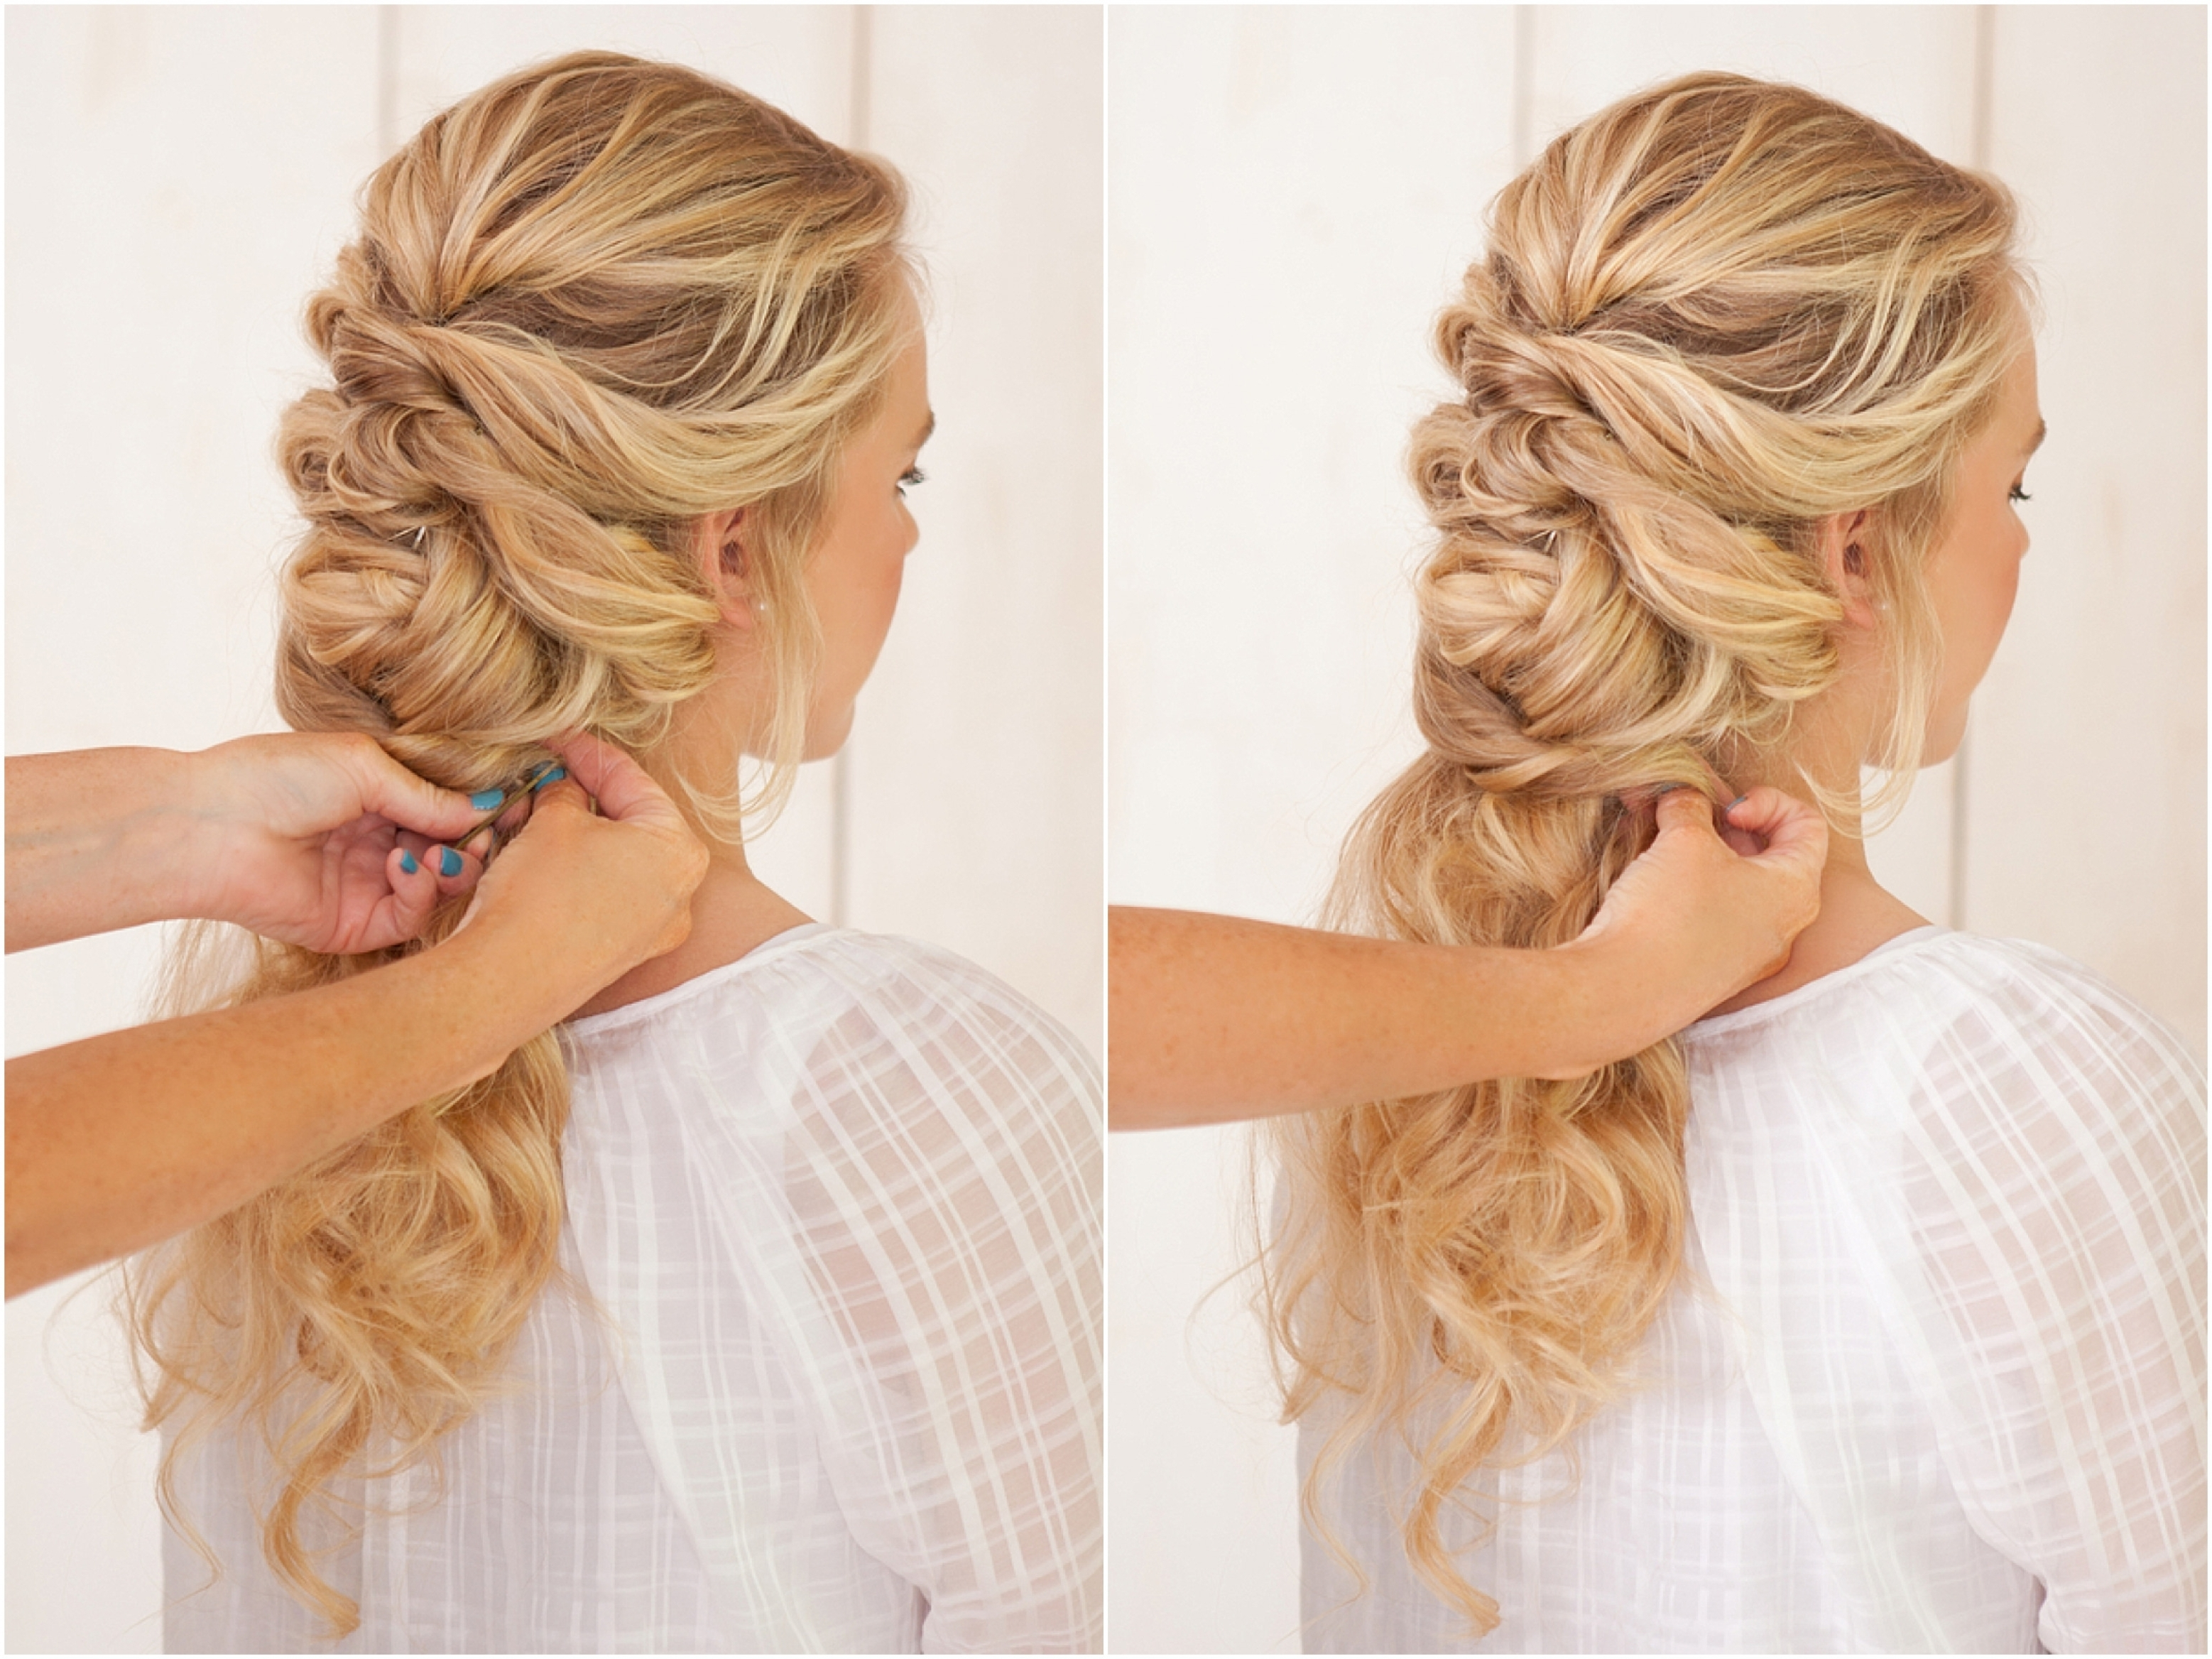 Plait Wedding Hairstyles French Braid Wedding Hairstyle The Bride Regarding Favorite Wedding Hairstyles With Plaits (View 11 of 15)